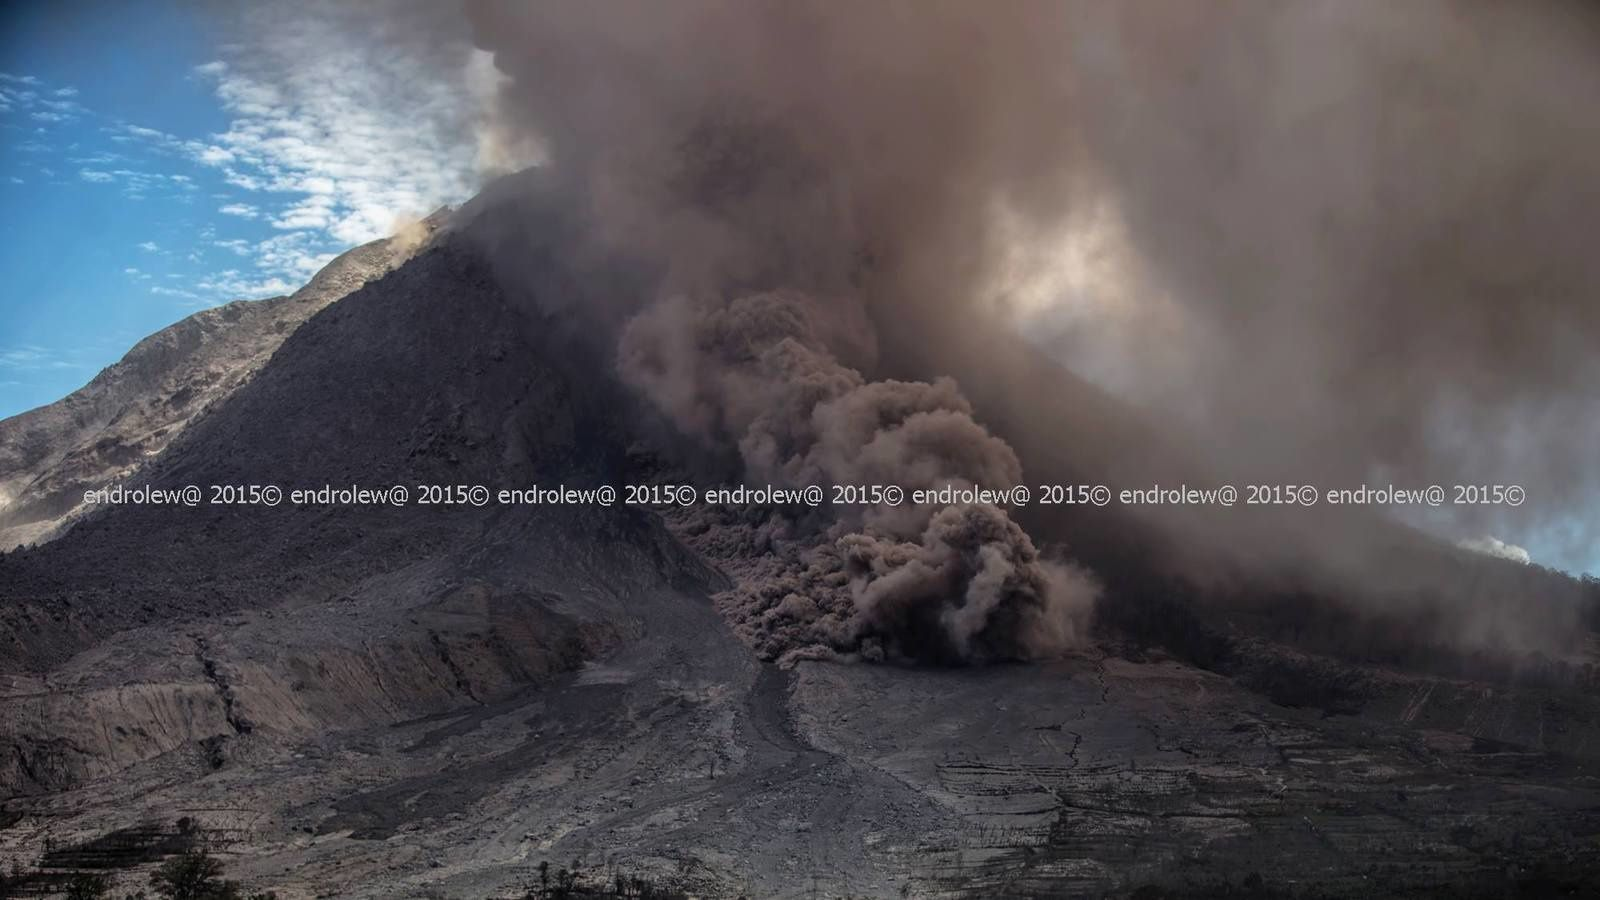 Sinabung - Coulée pyroclastique du 29.06.2015 - 14h10 - photo endrolew@